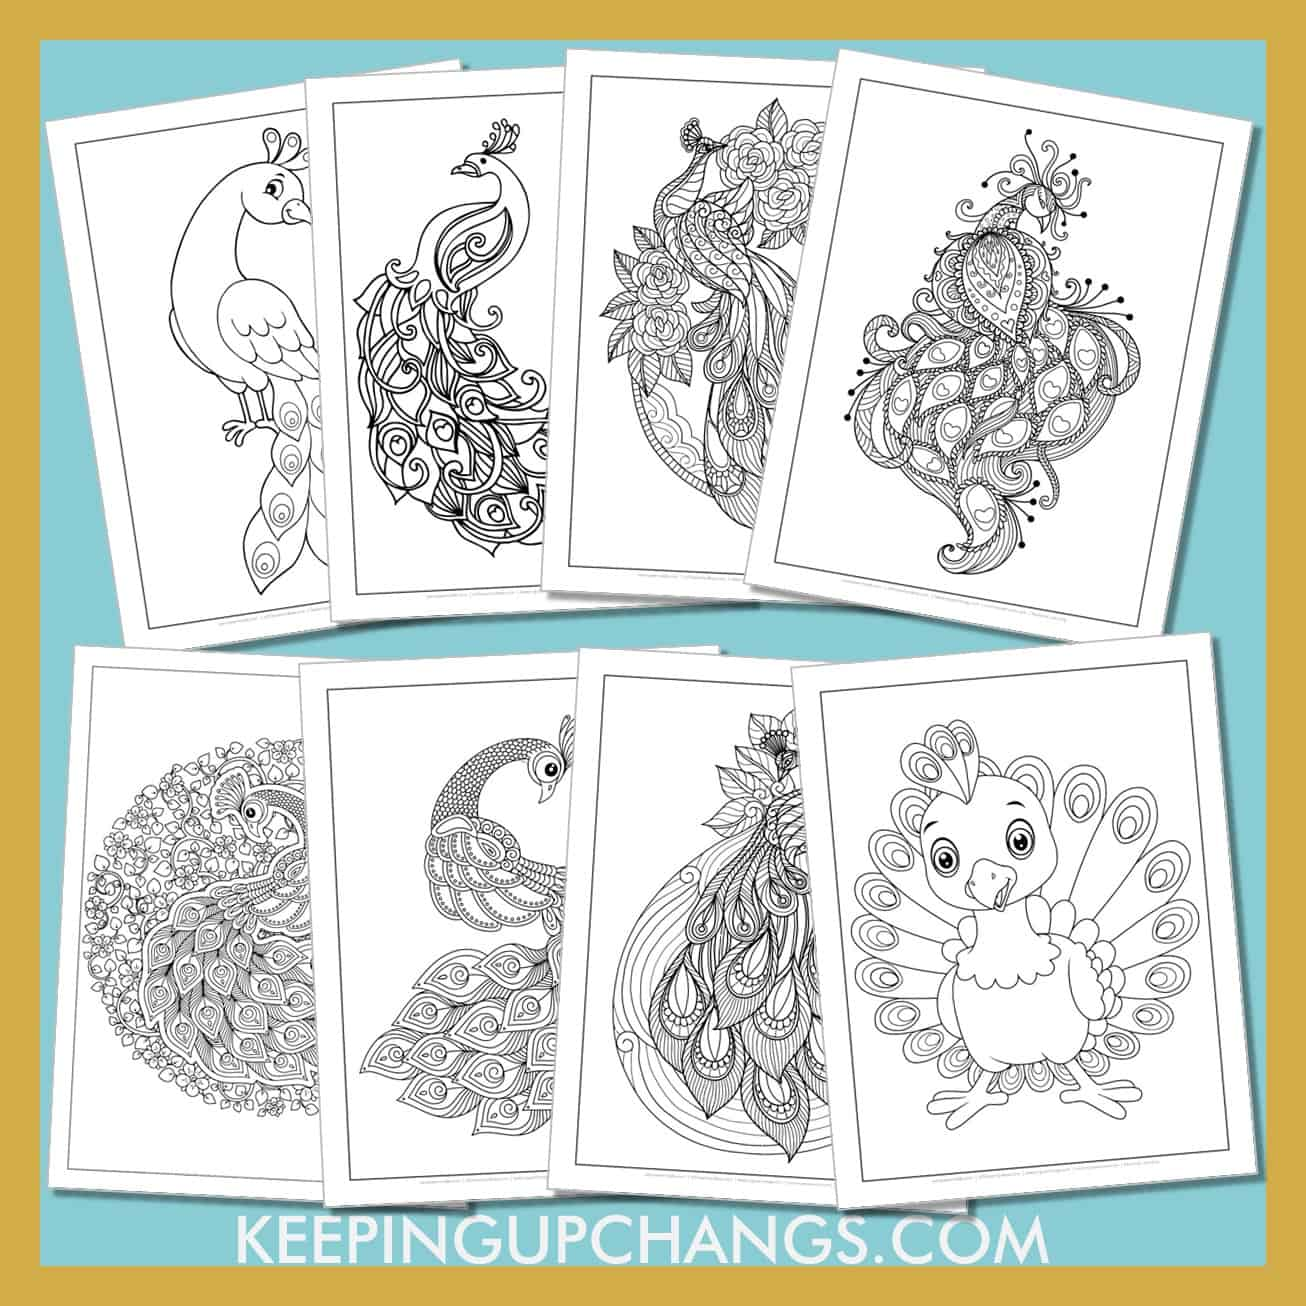 peacock colouring sheets from simple to the detailed animal mandalas.